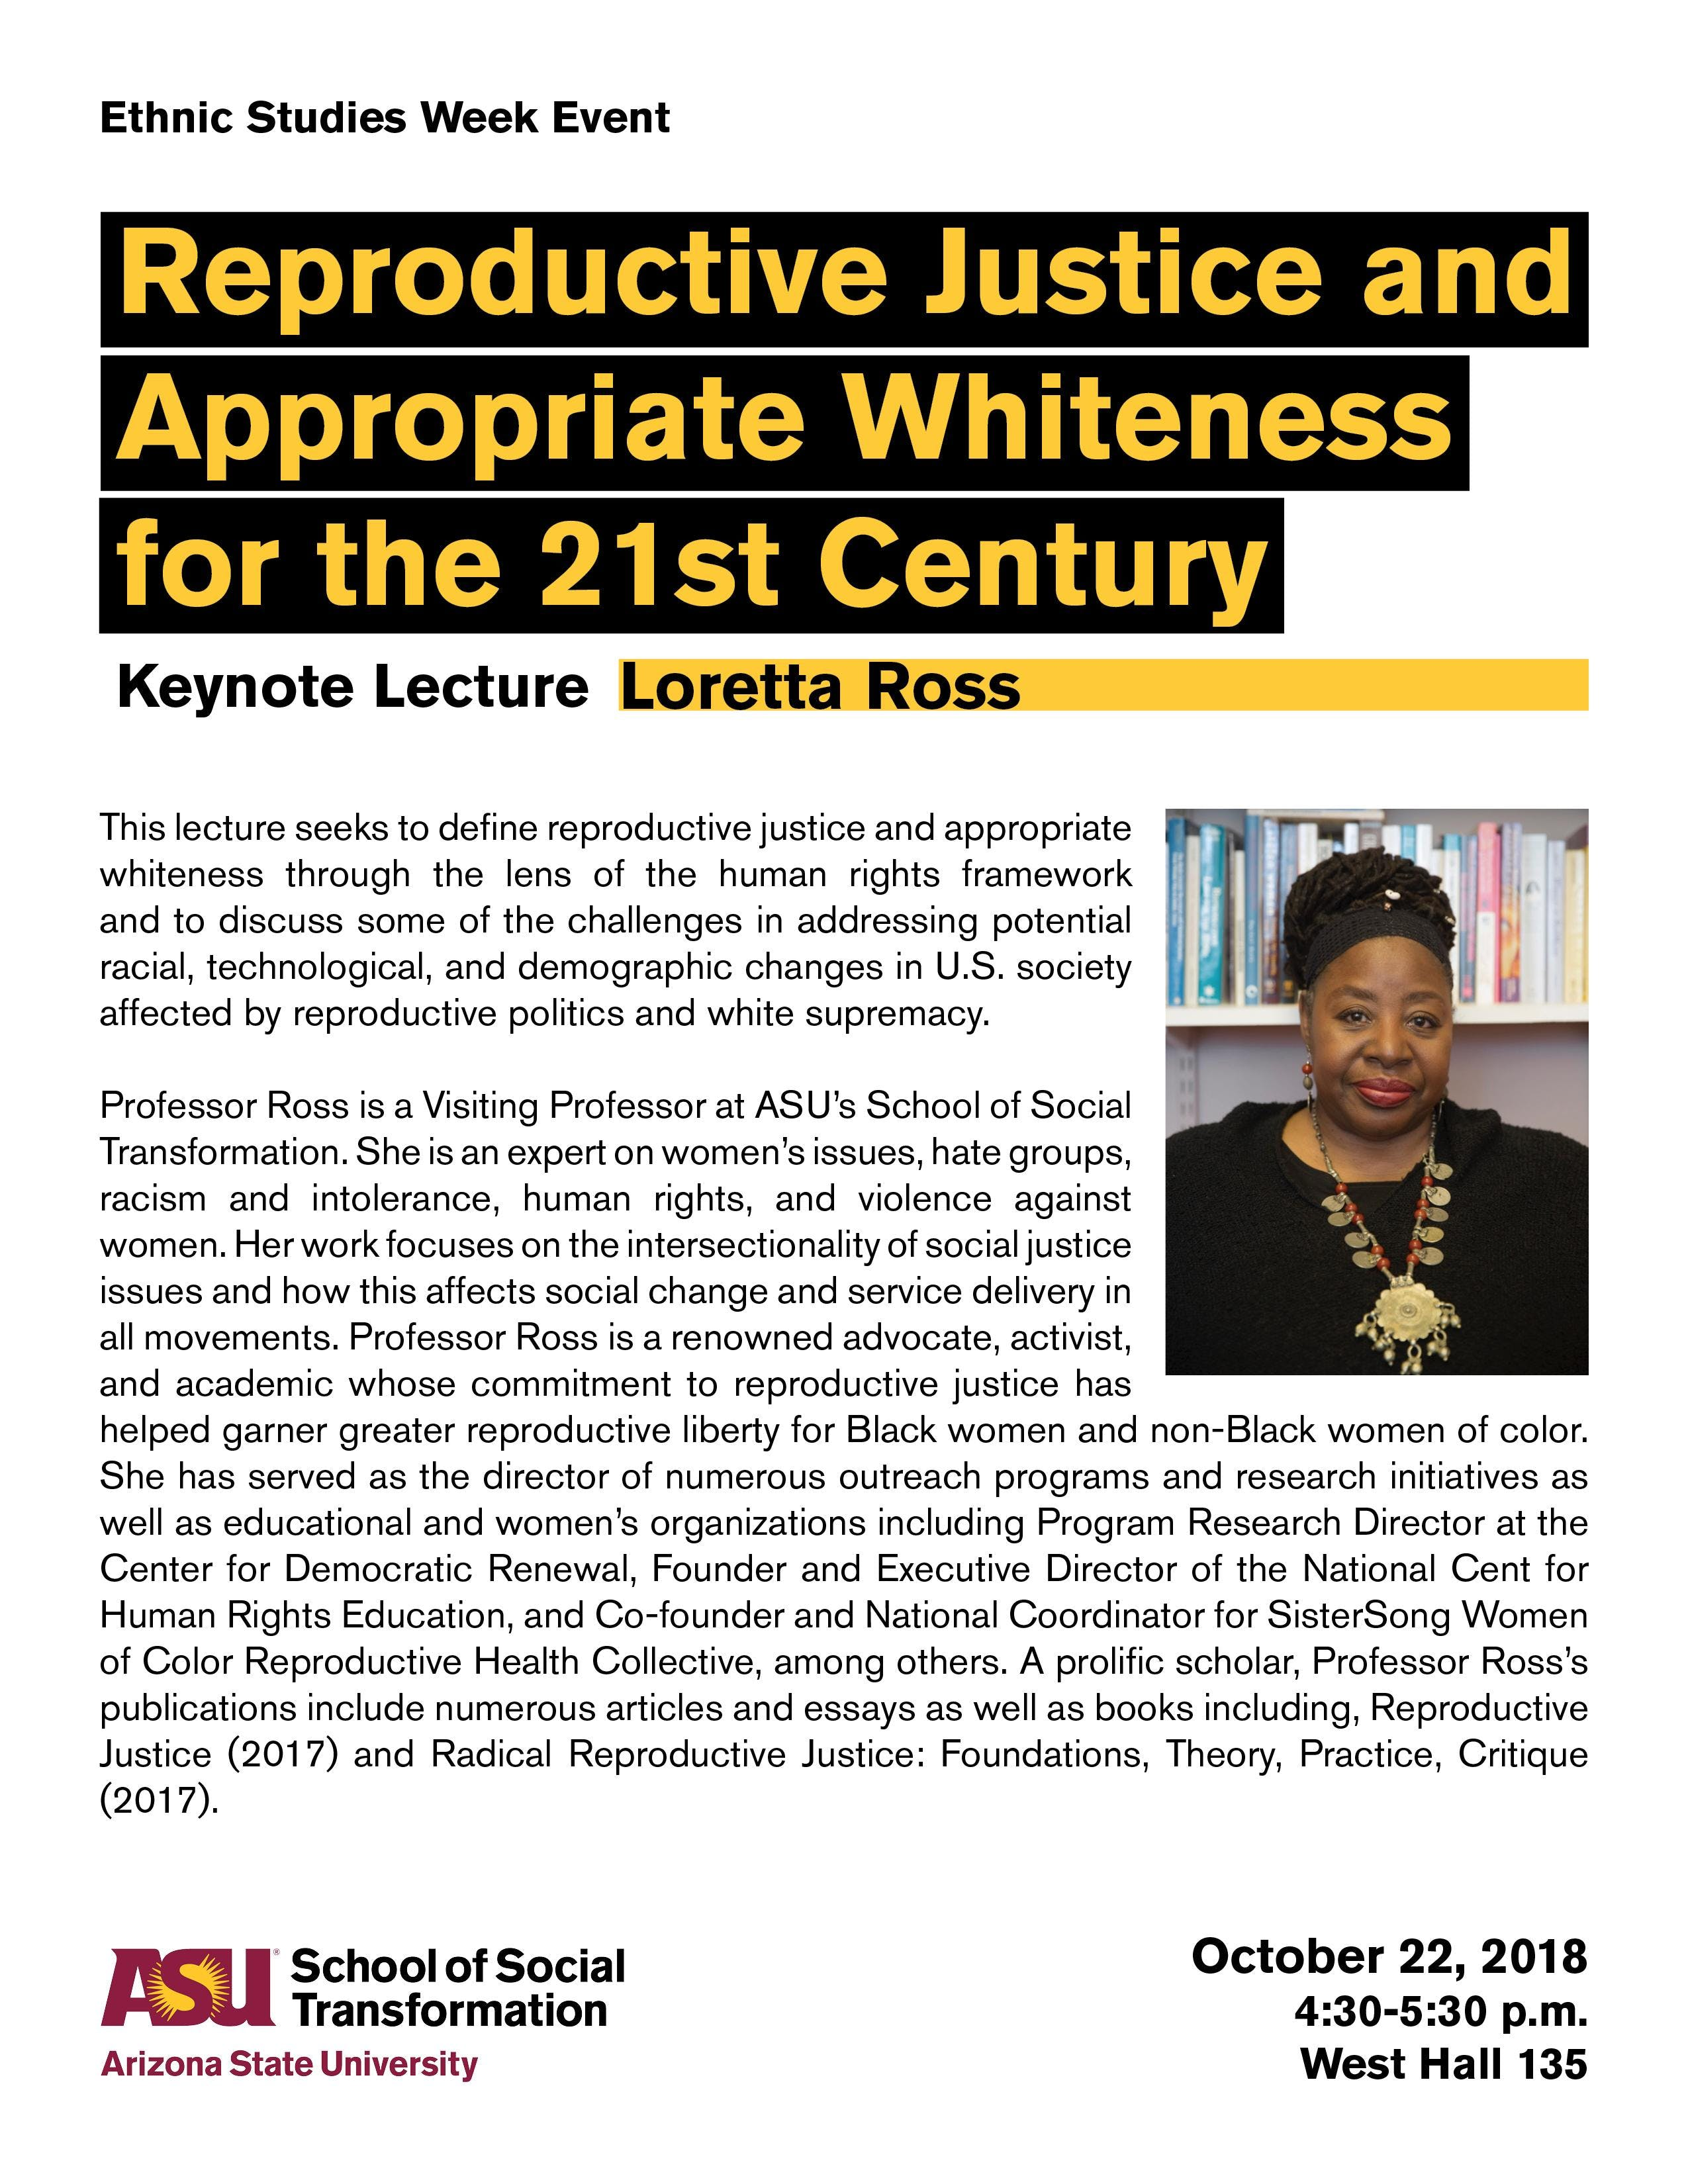 Ethnic Studies Week Event Keynote with Loretta Ross,